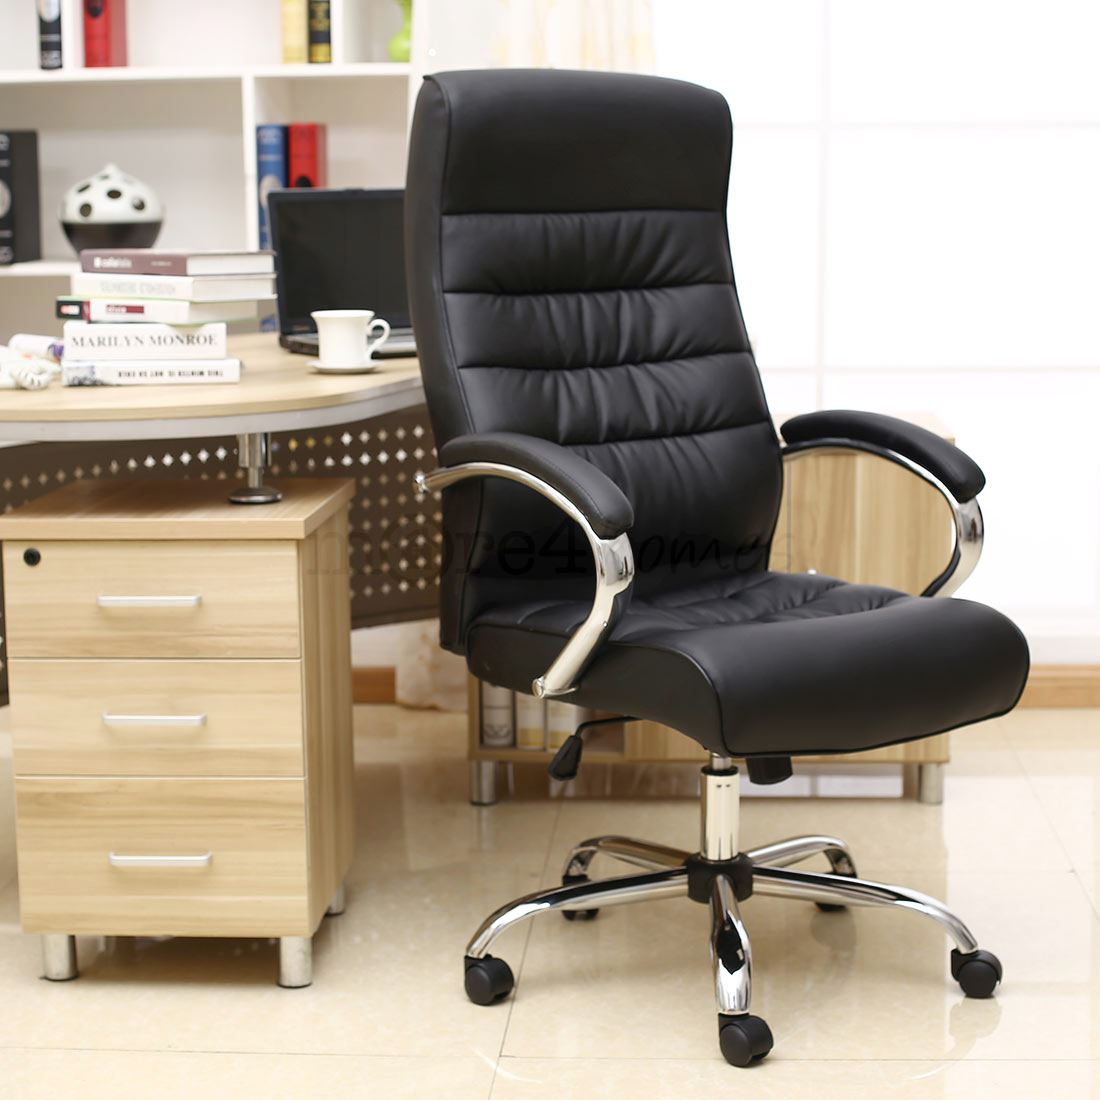 posture executive leather chair heated seat covers office mexico premium high back